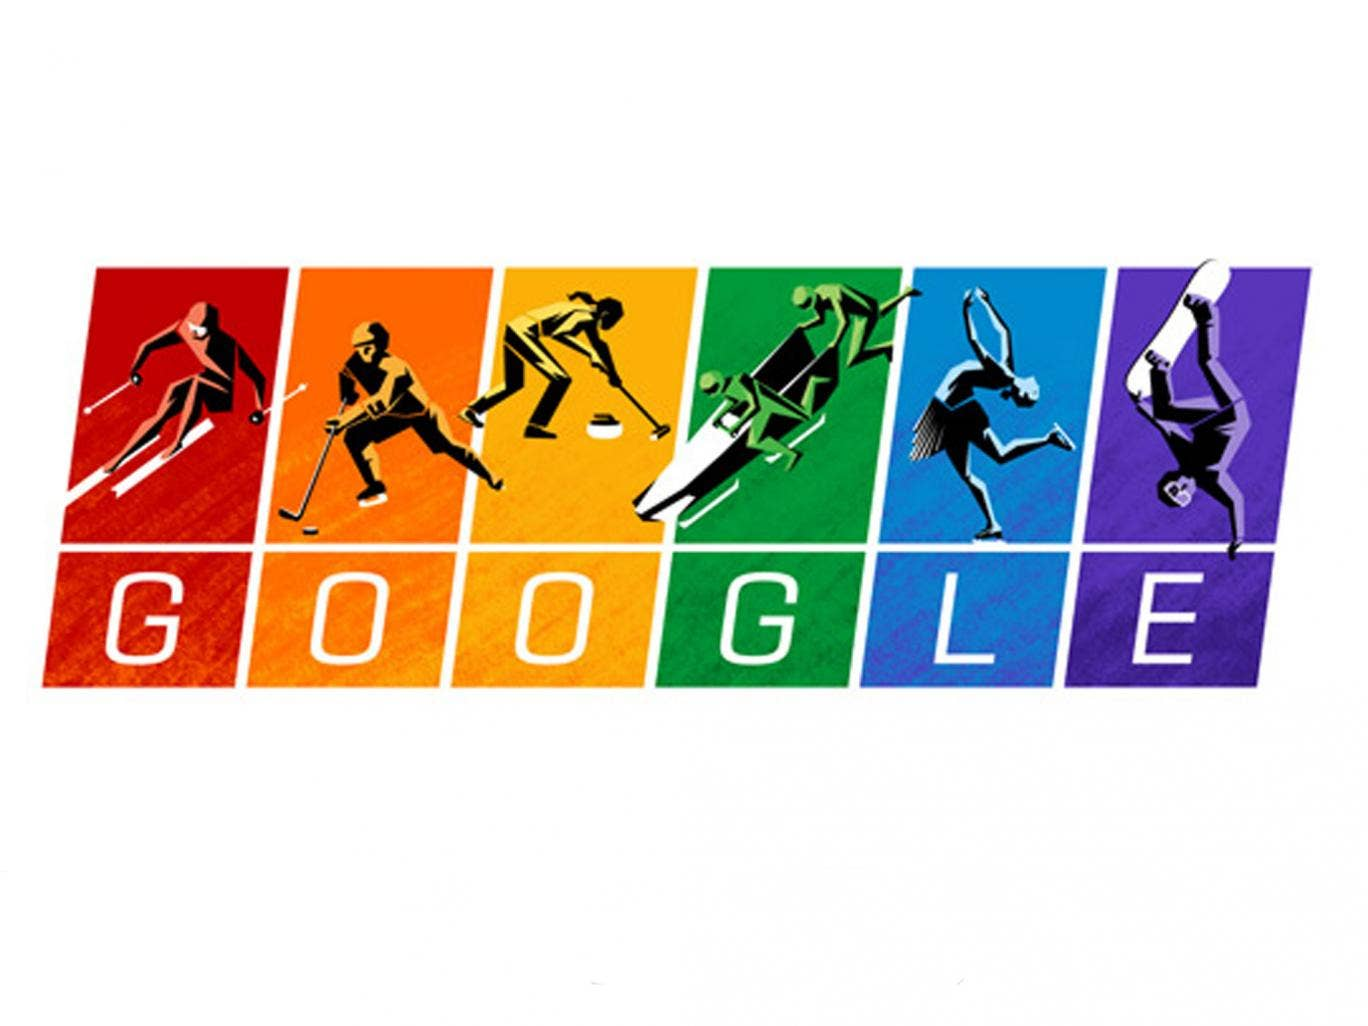 Today's Google Doodle celebrates the start of the 2014 Sochi Winter Olympics